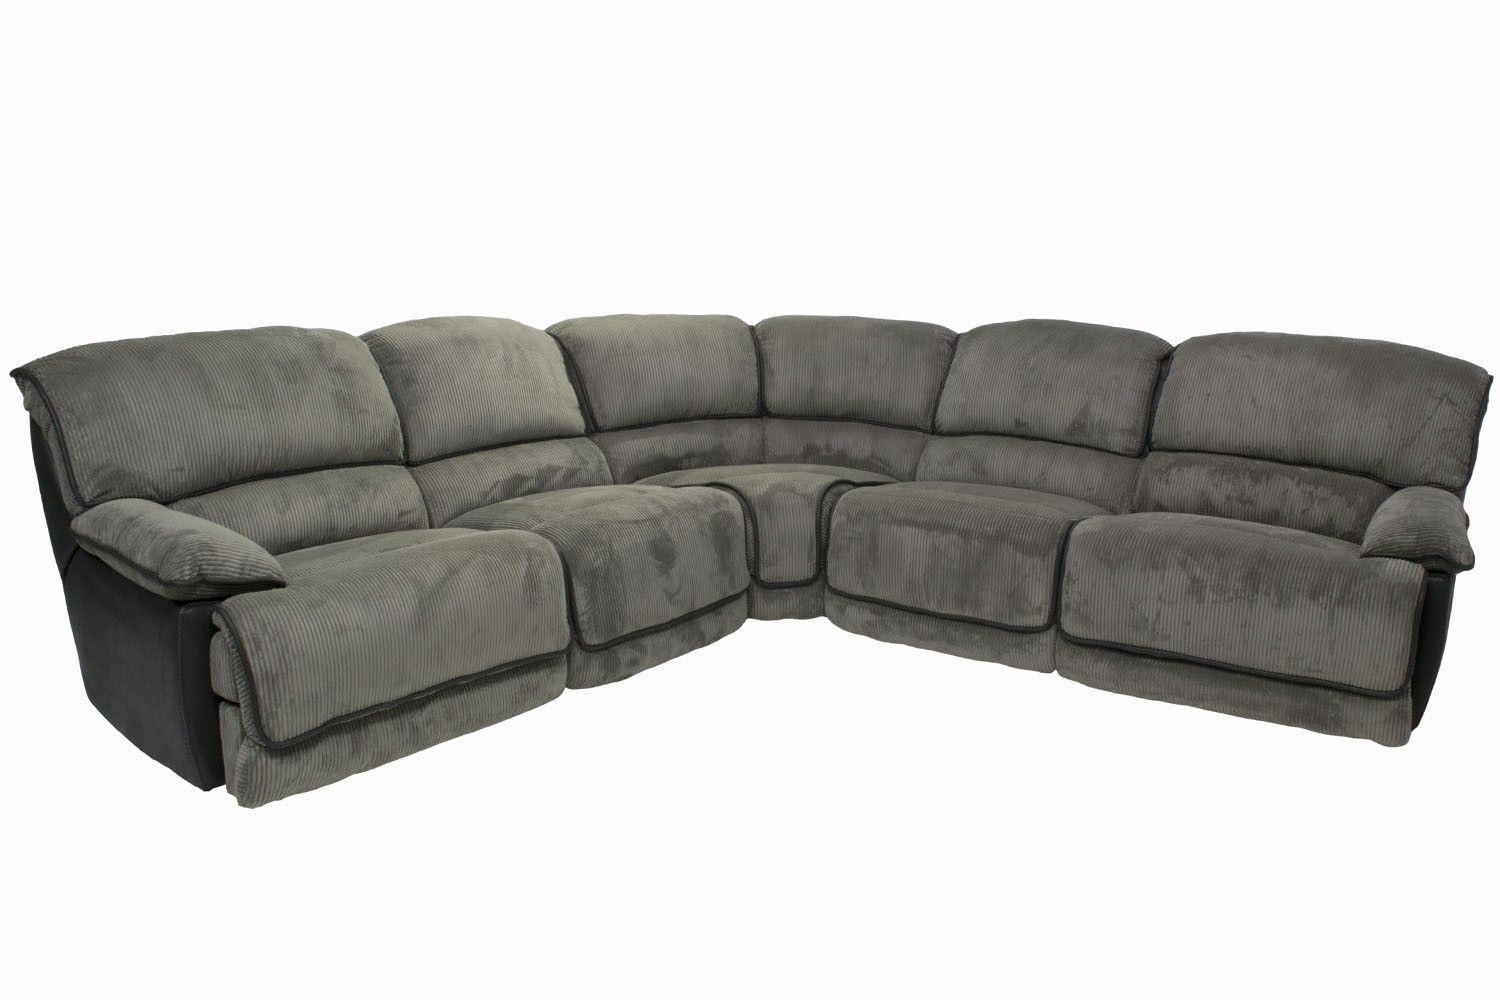 Mor Furniture For Less The Austin Graphite 5 Piece